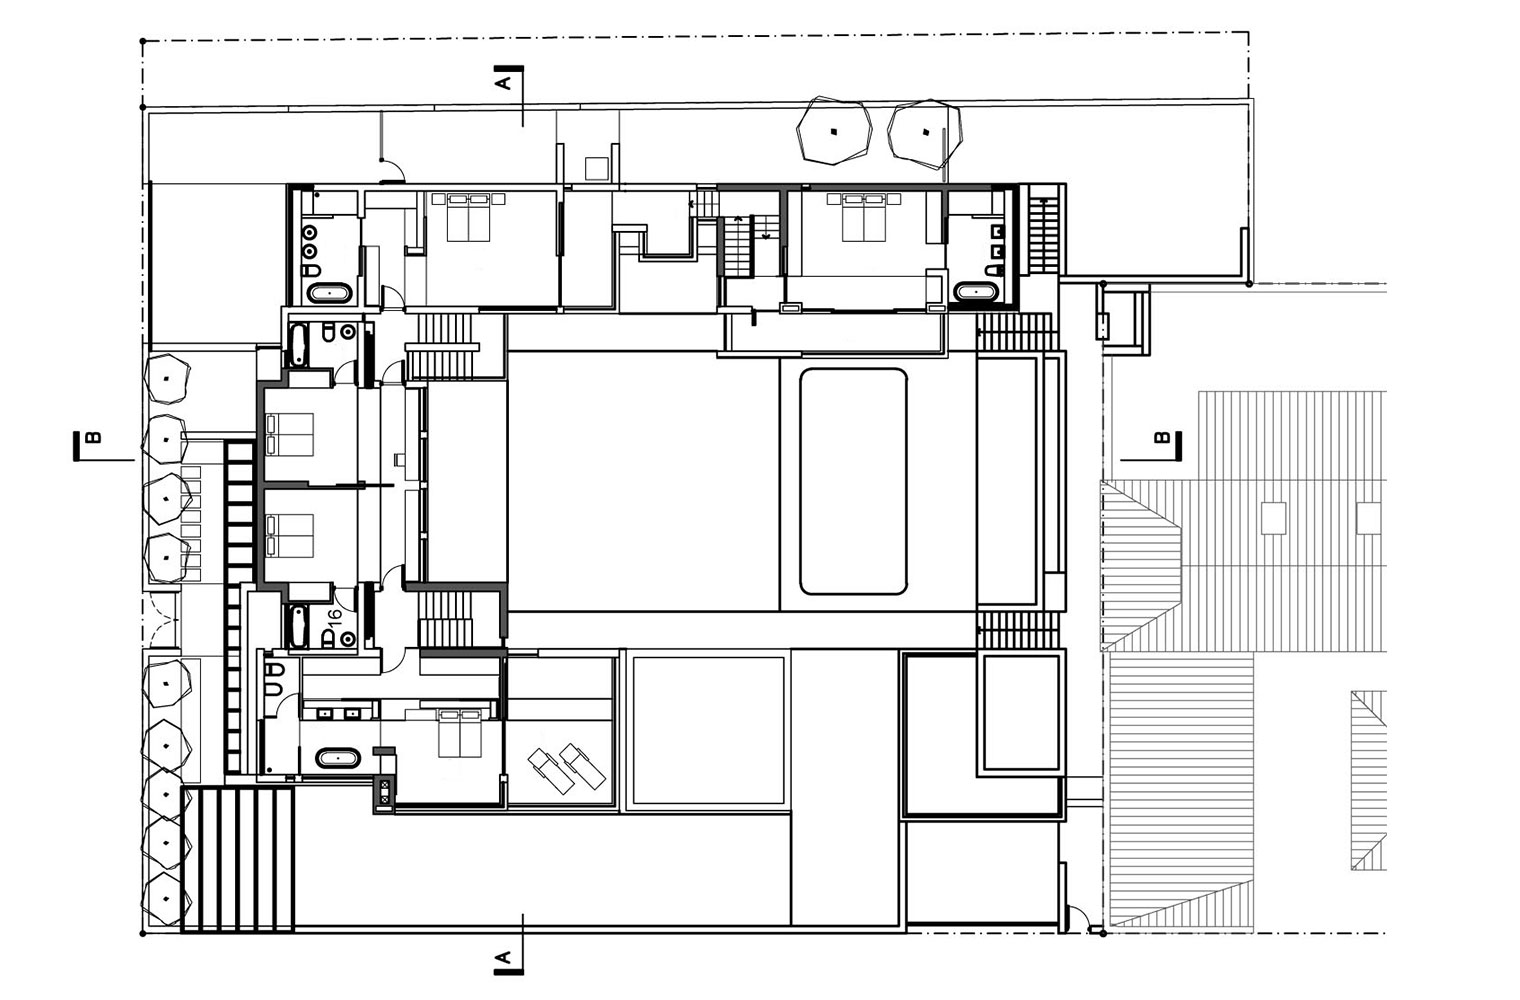 111 on 11th Guest House - First Floor Plan